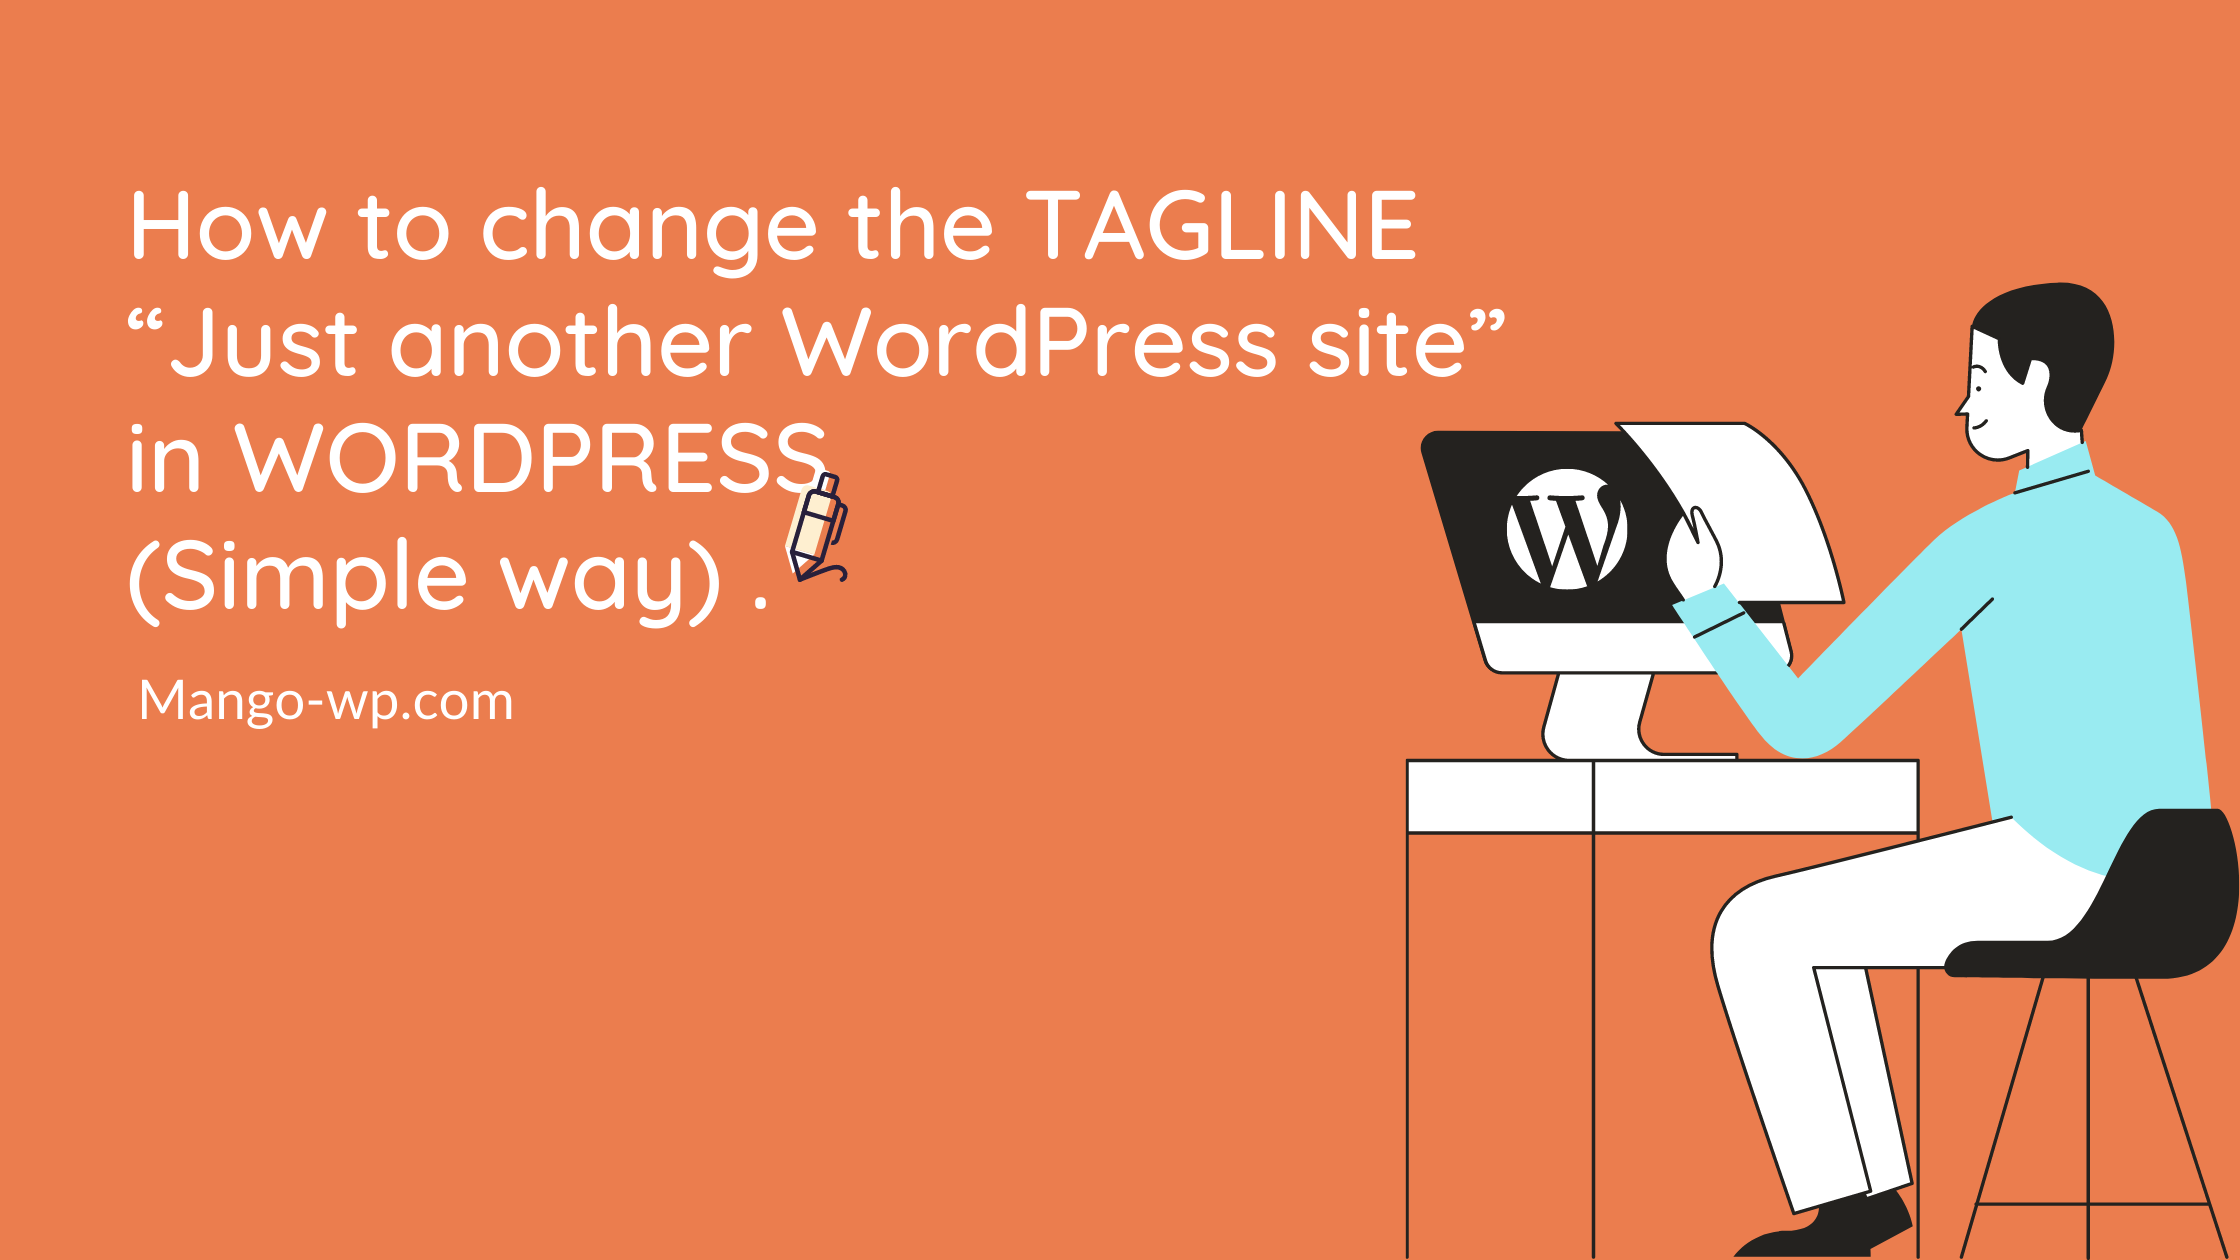 How to change the tagline in WordPress